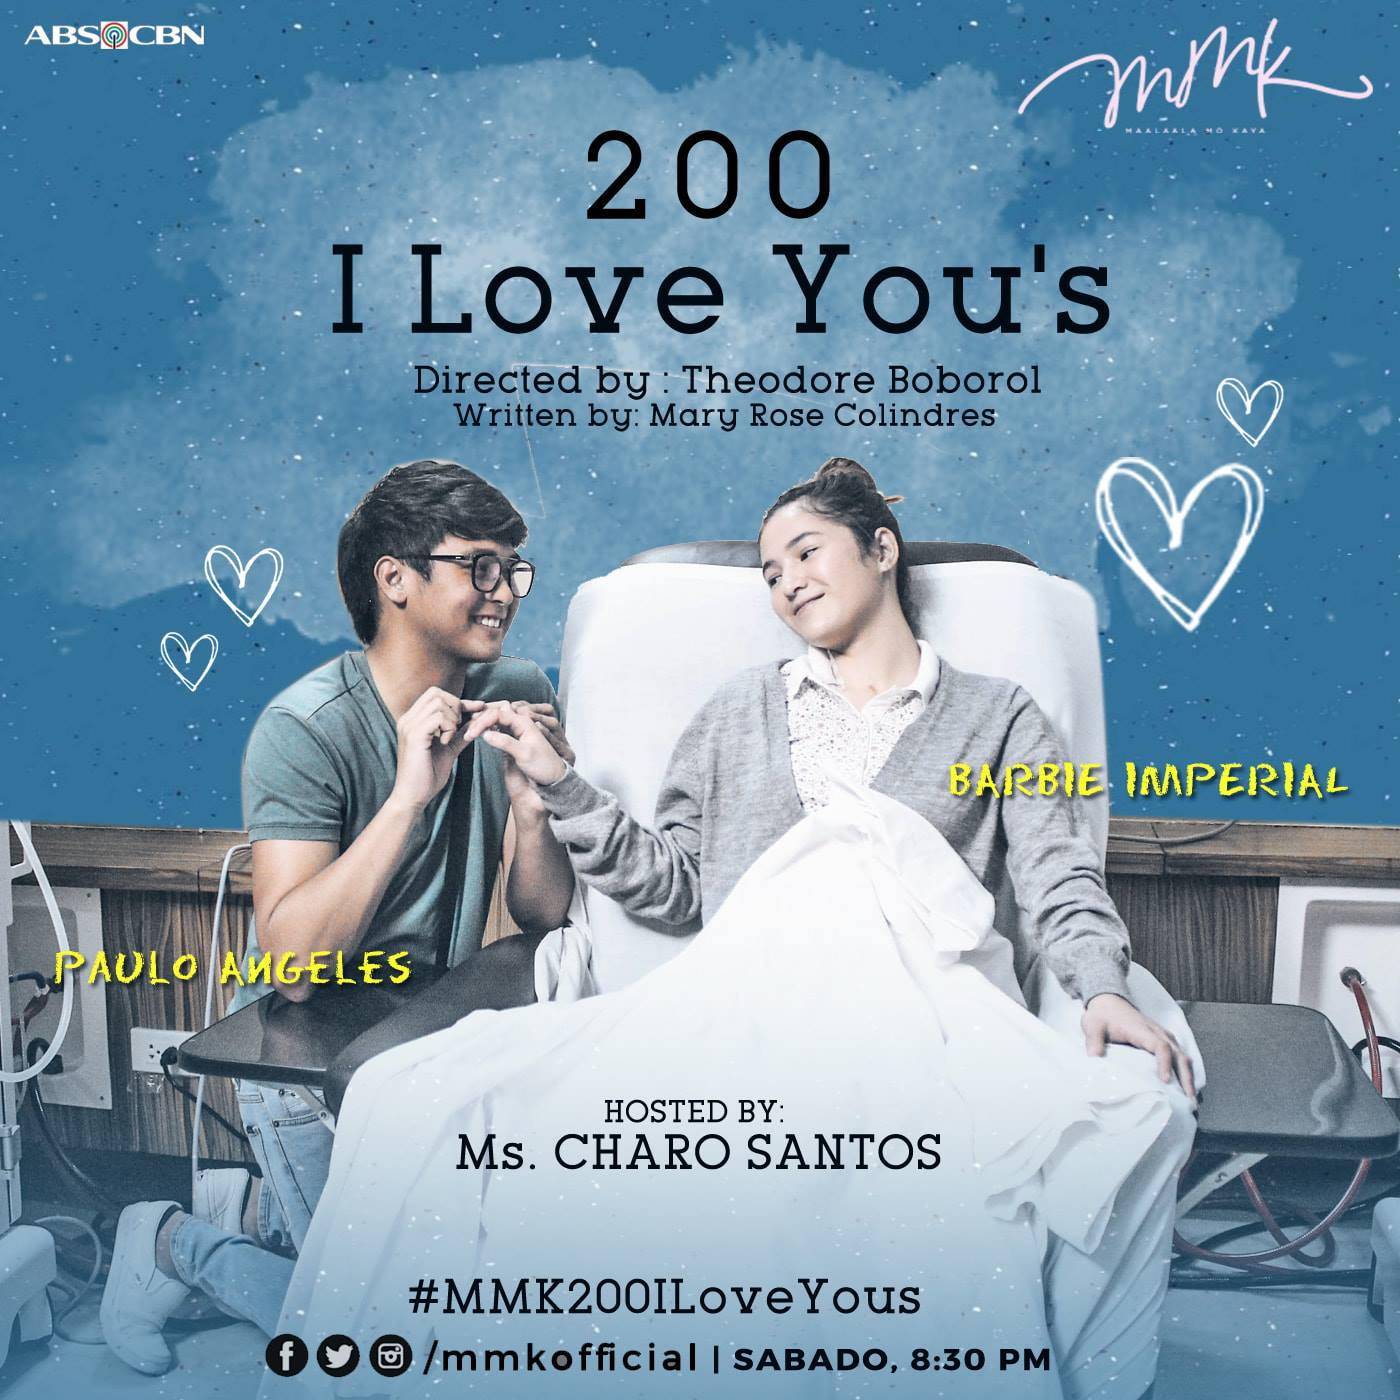 """Barbie, Paulo, and Ronnie in extraordinary stories of resilience and hope on """"MMK"""""""